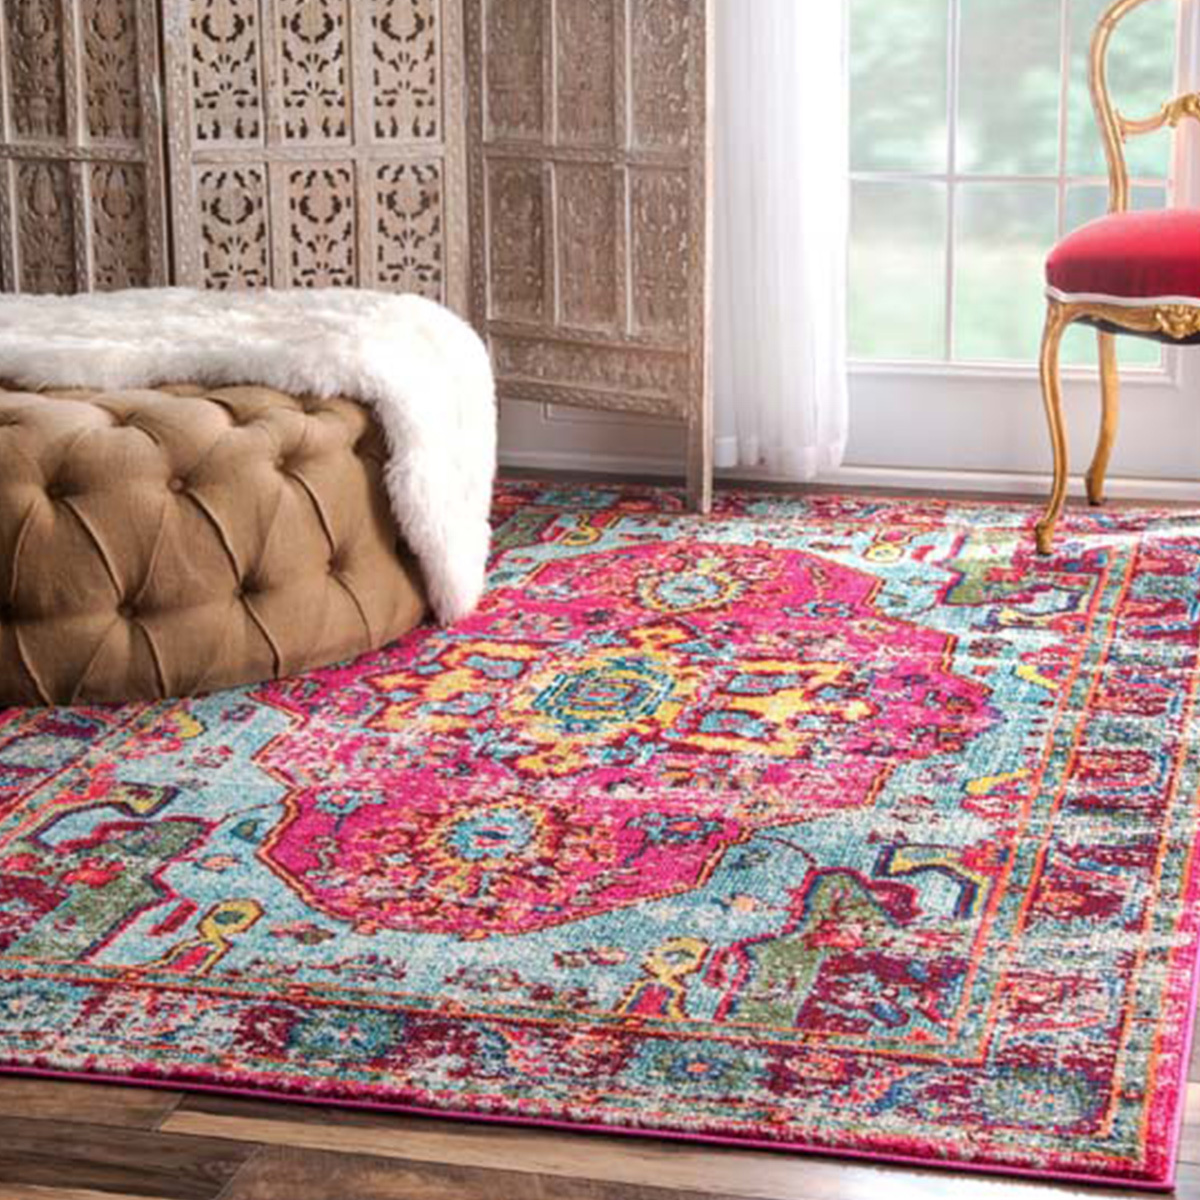 Abstract oriental multi-color rug made of 100% polypropylene to prevent shedding. photo